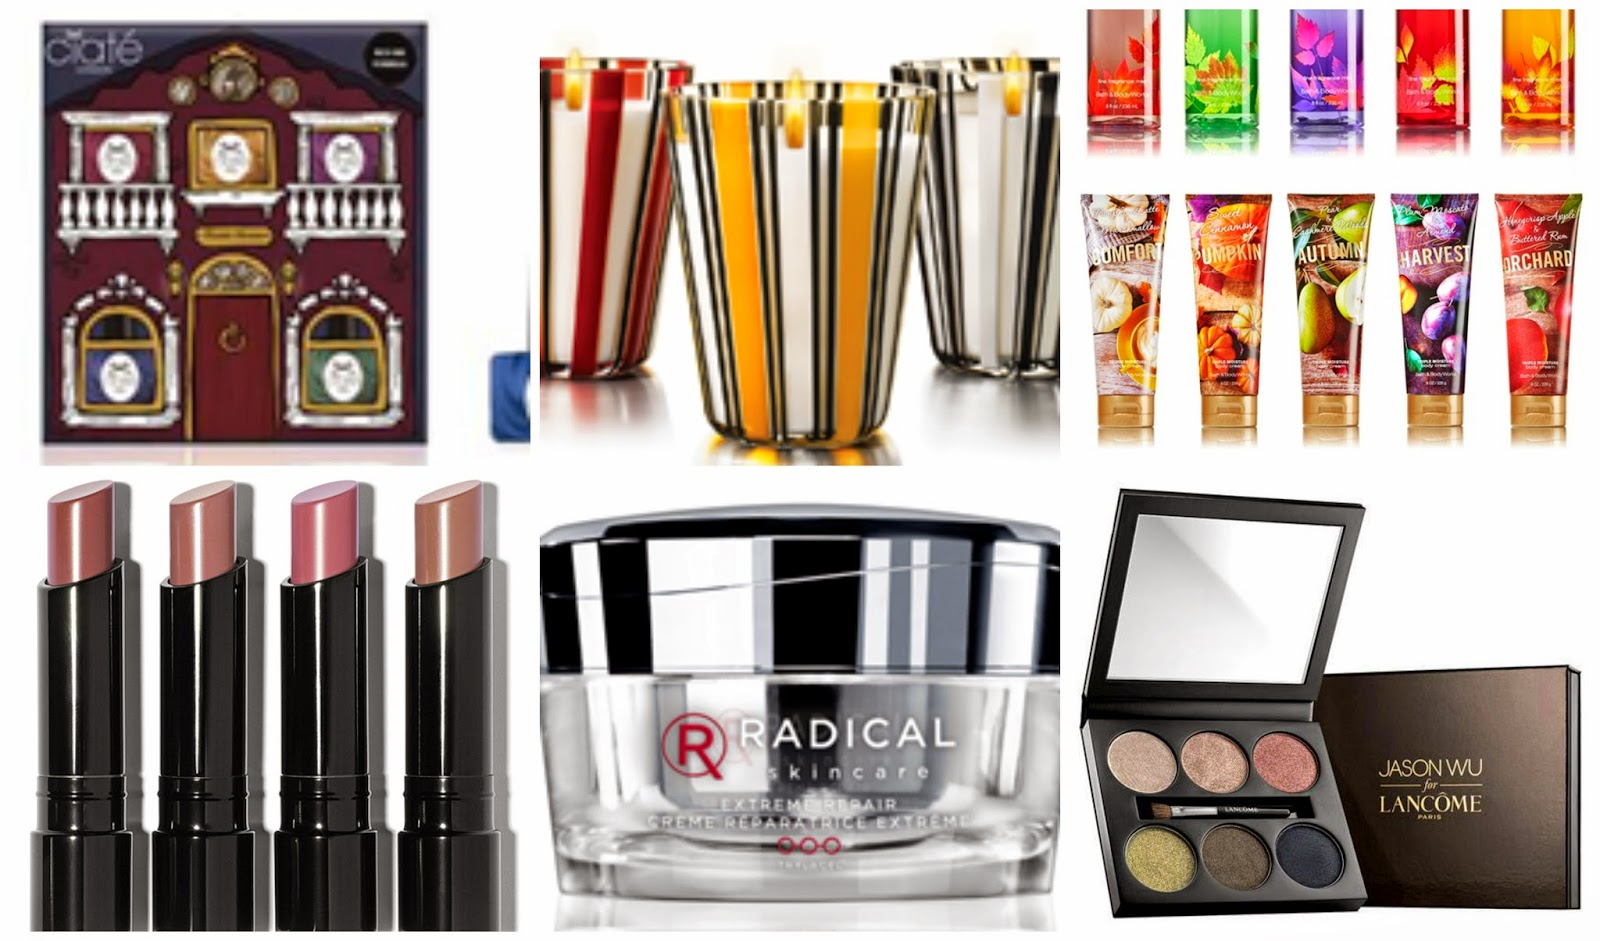 The Daily Beauty Report 27.08.14